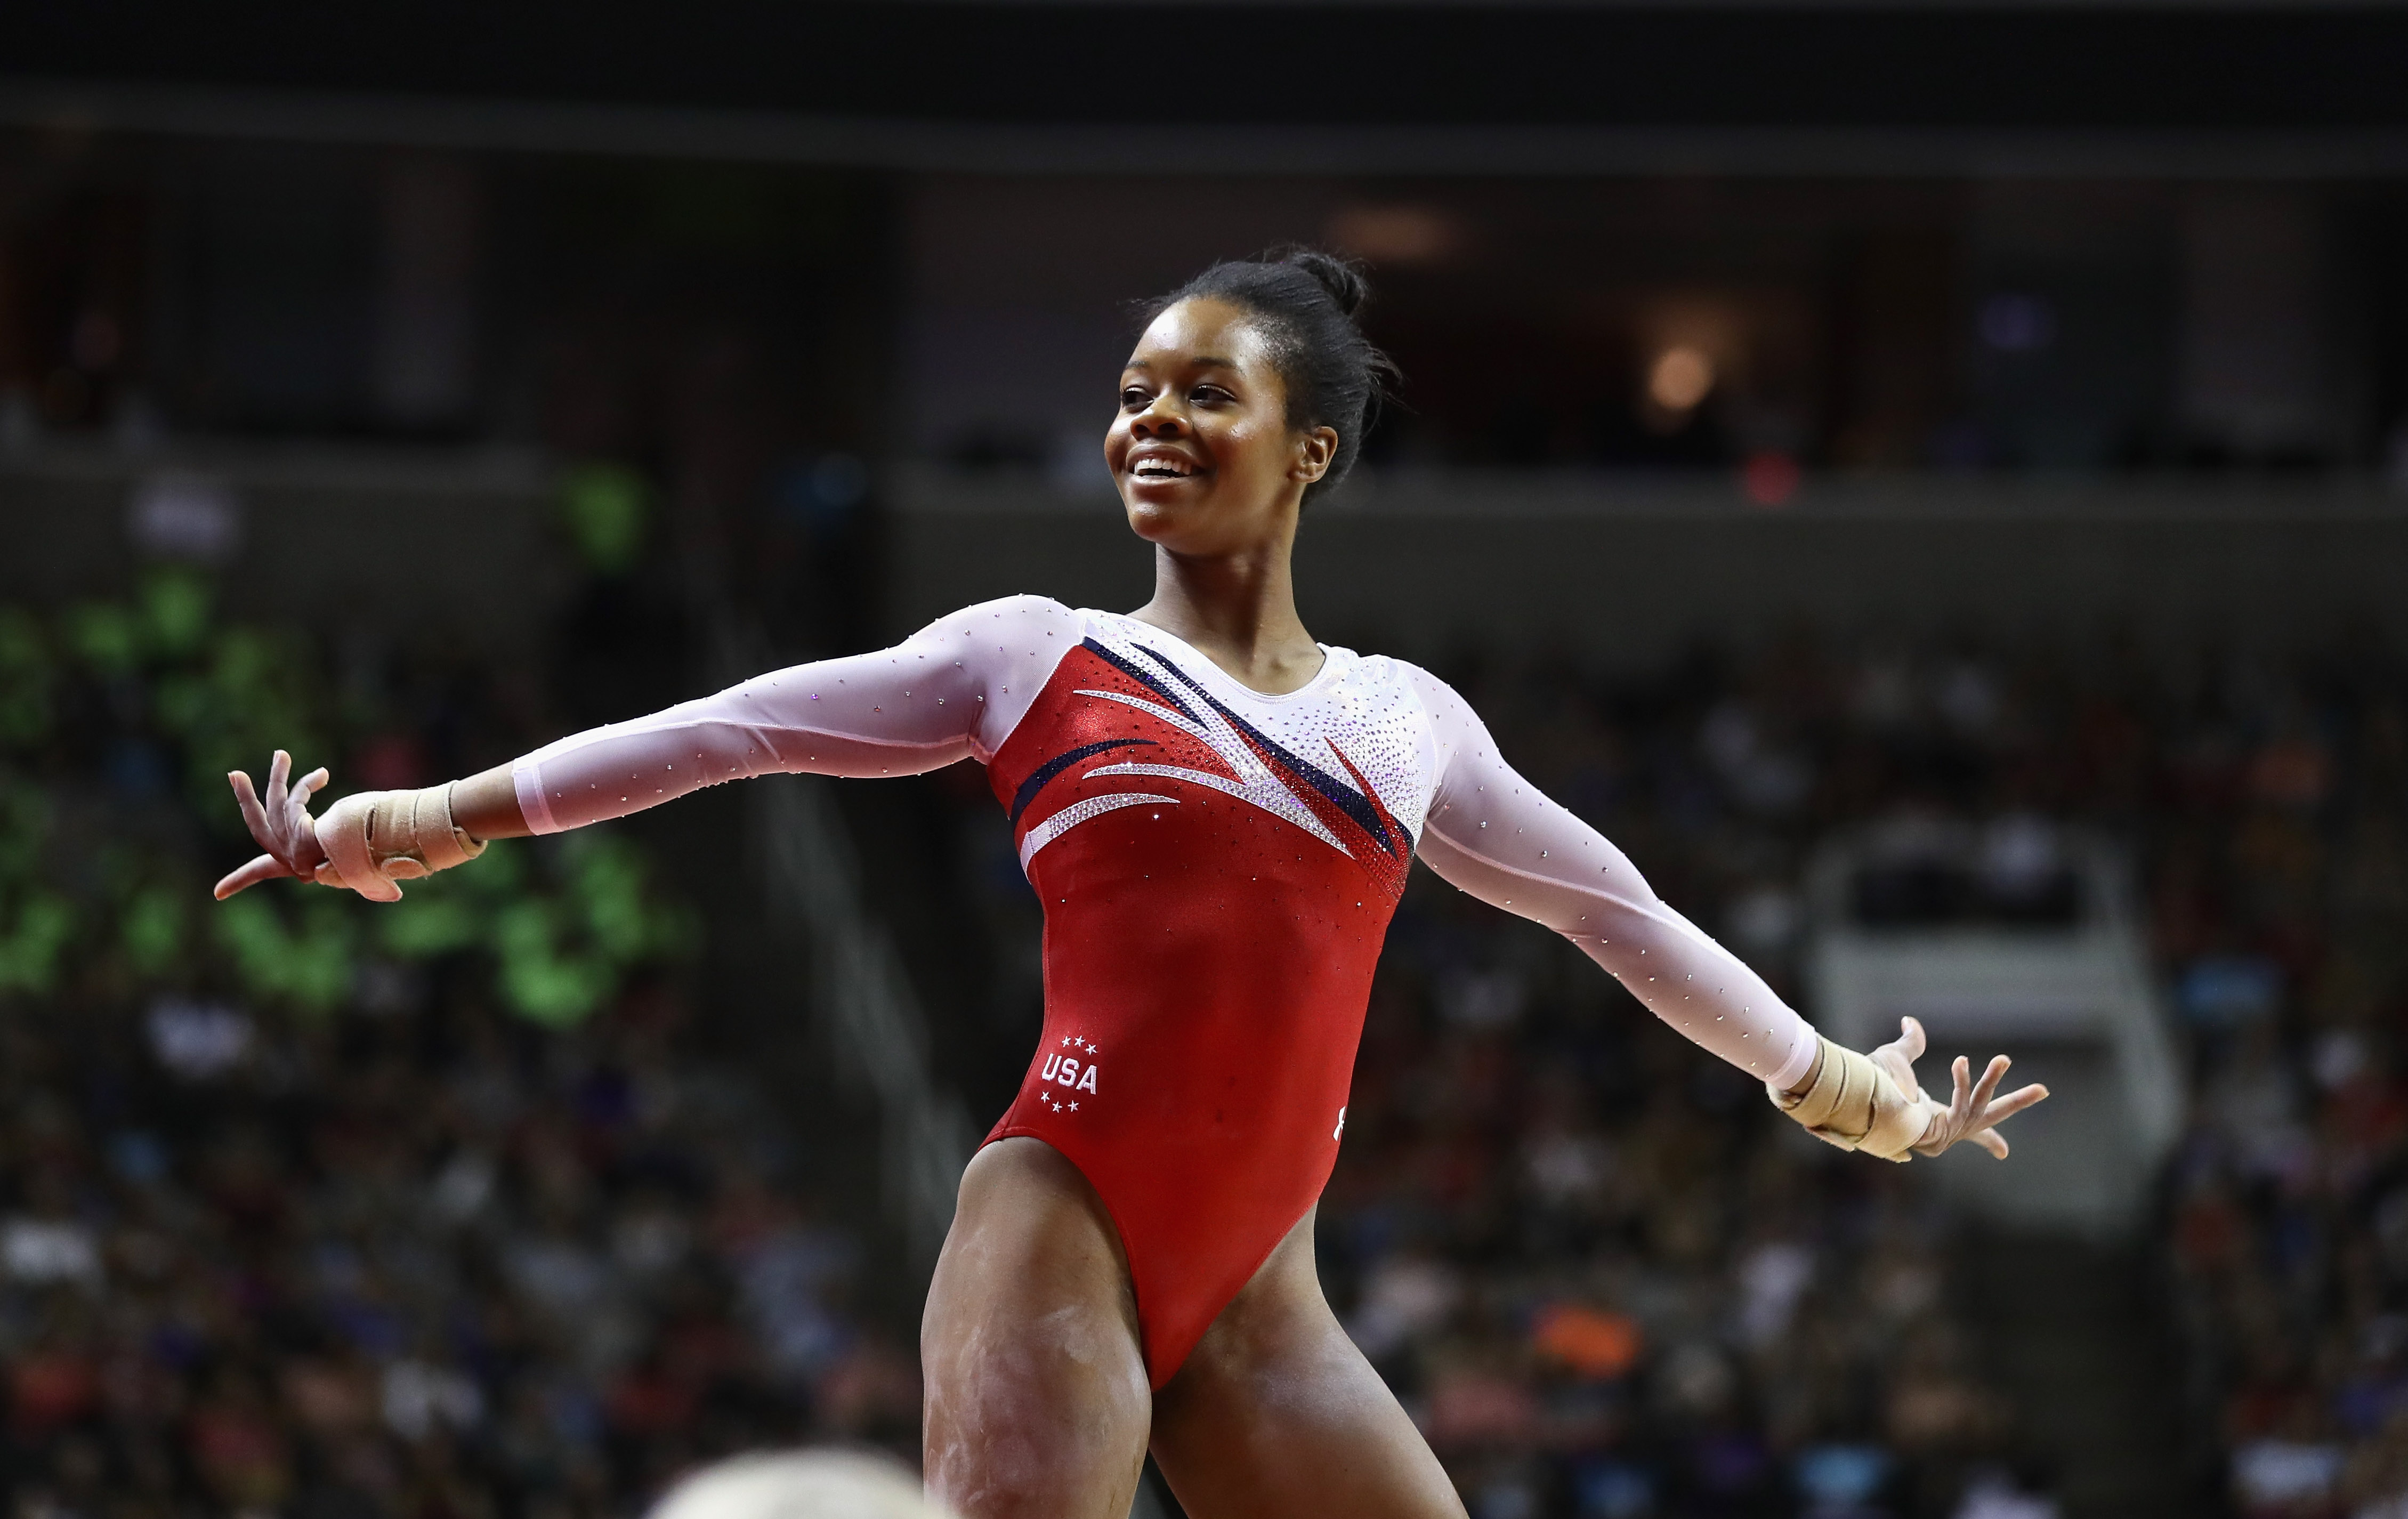 Gabrielle Douglas competes in the floor exercise during Day 2 of the 2016 U.S. Women's Gymnastics Olympic Trials at SAP Center on July 10 in San Jose, California.  (Photo by Ezra Shaw/Getty Images)